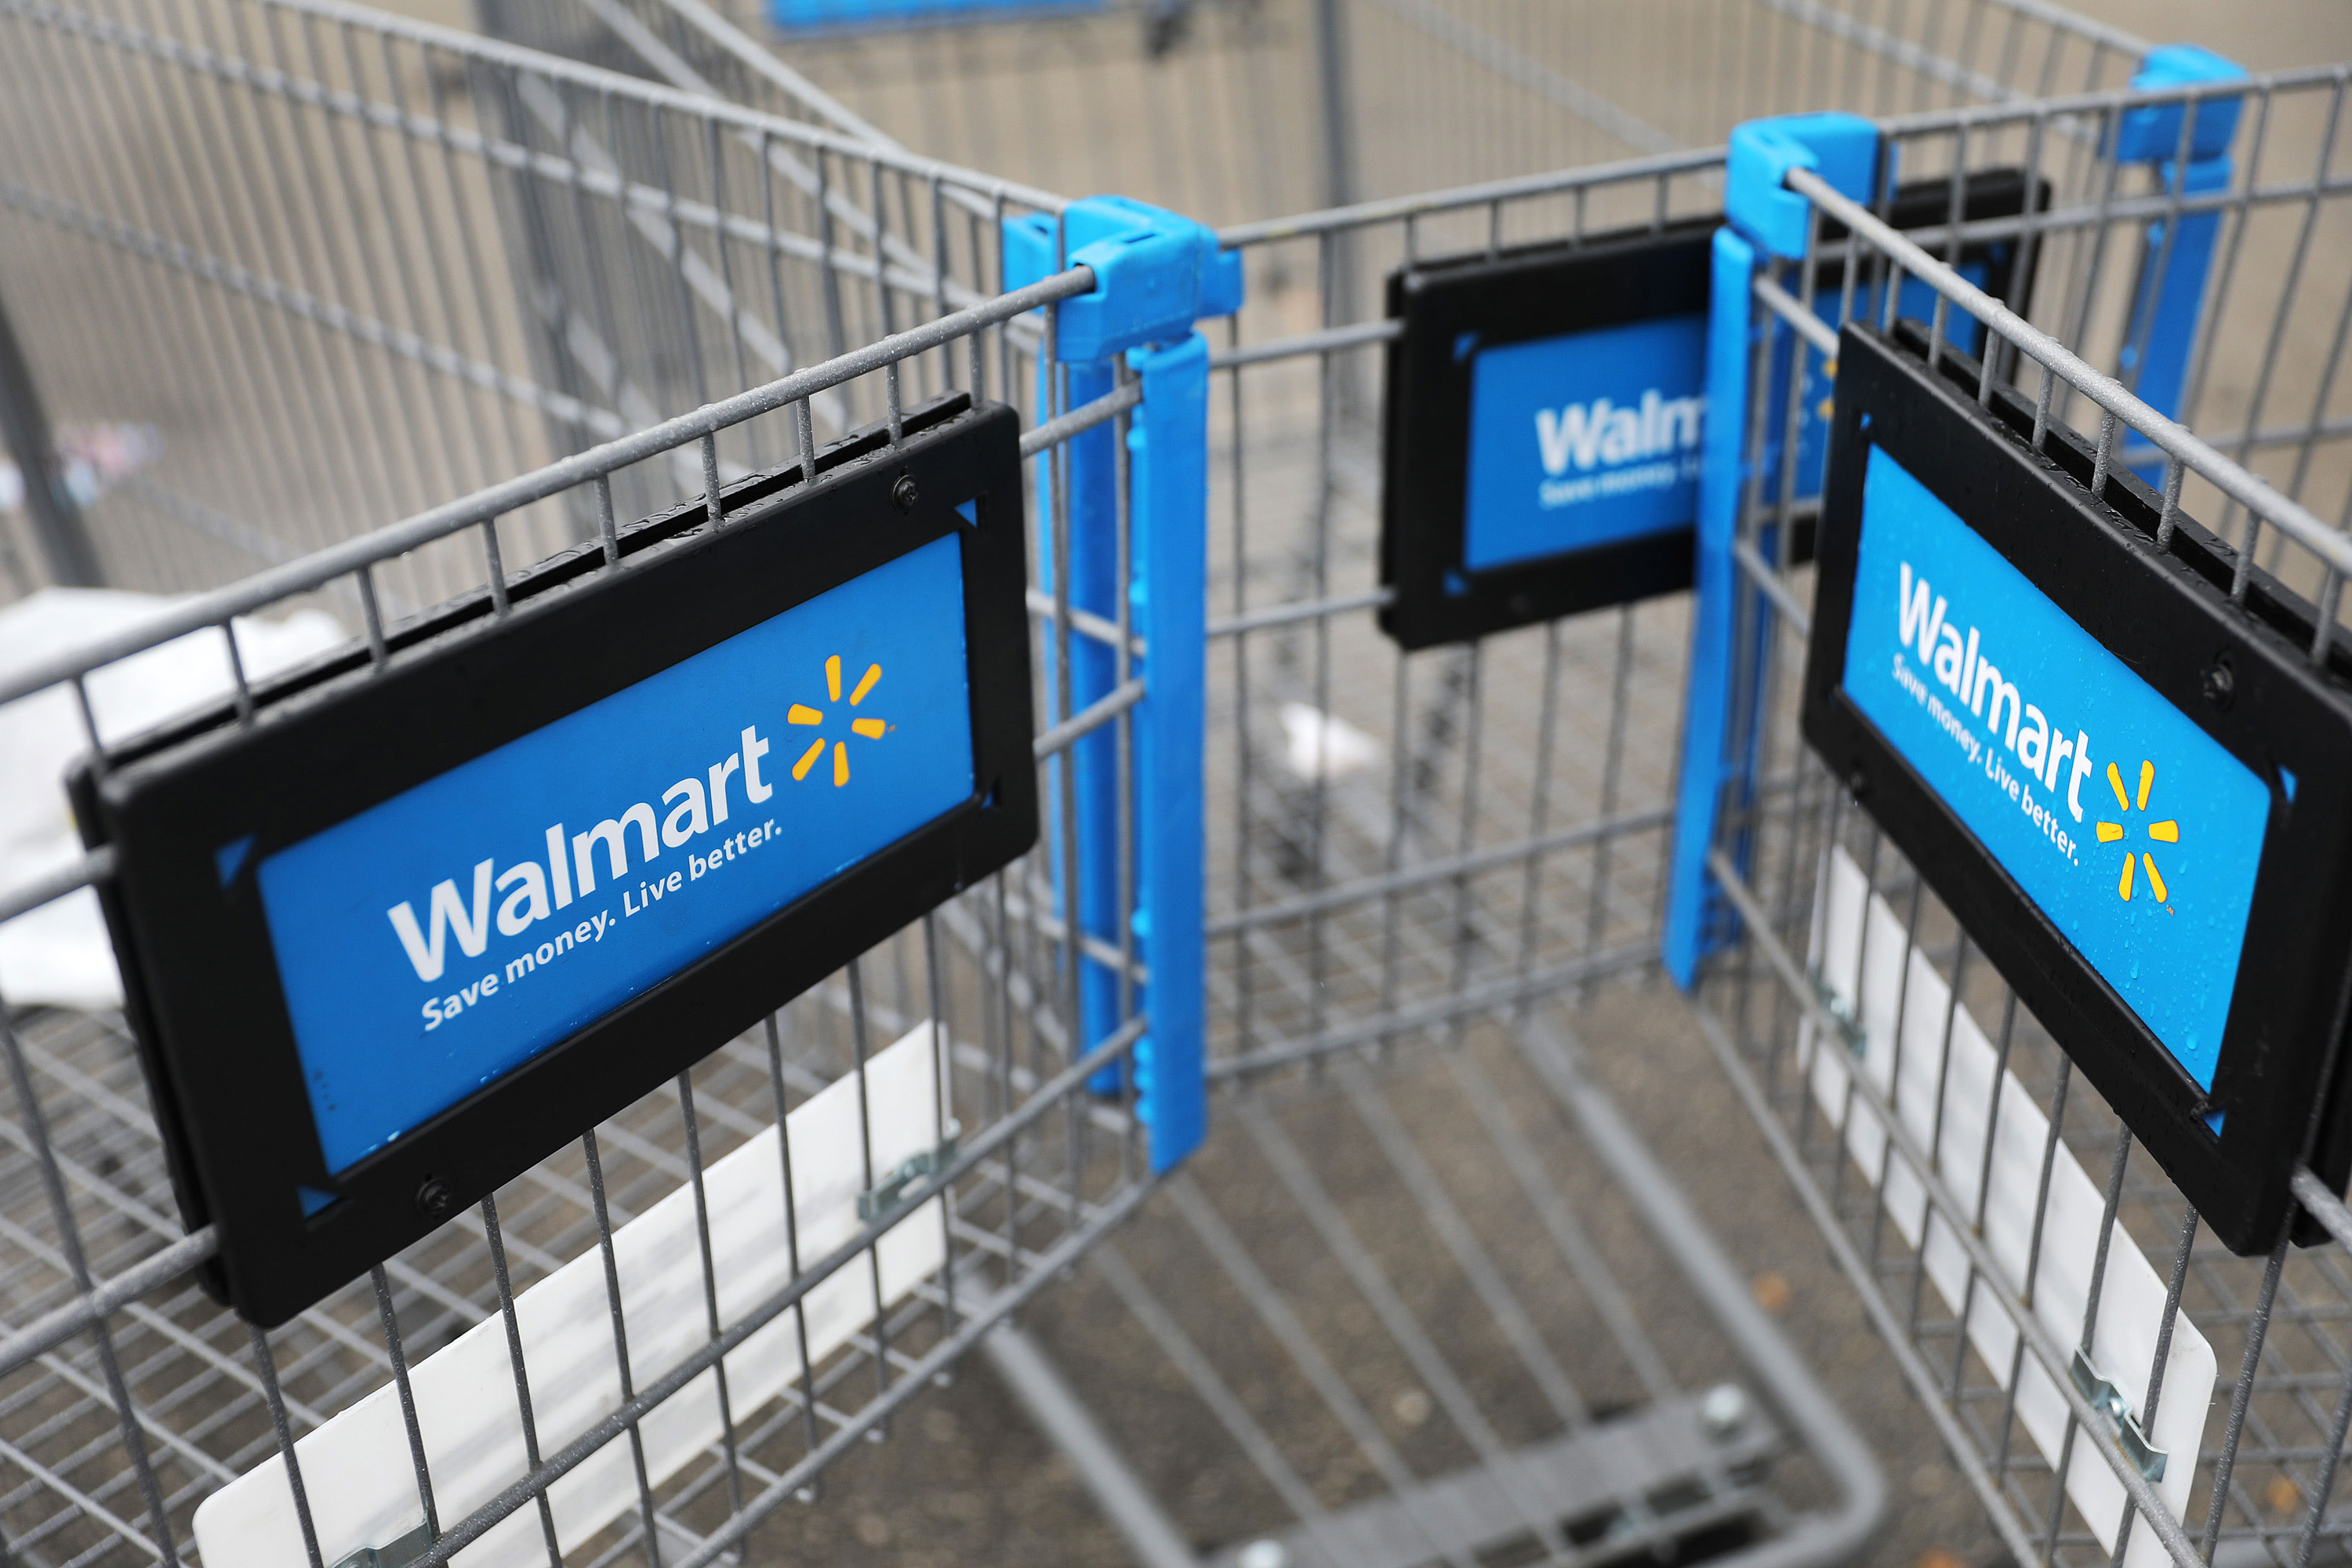 Shopping carts are seen outside of a Walmart store in Miami, Florida on February 18.